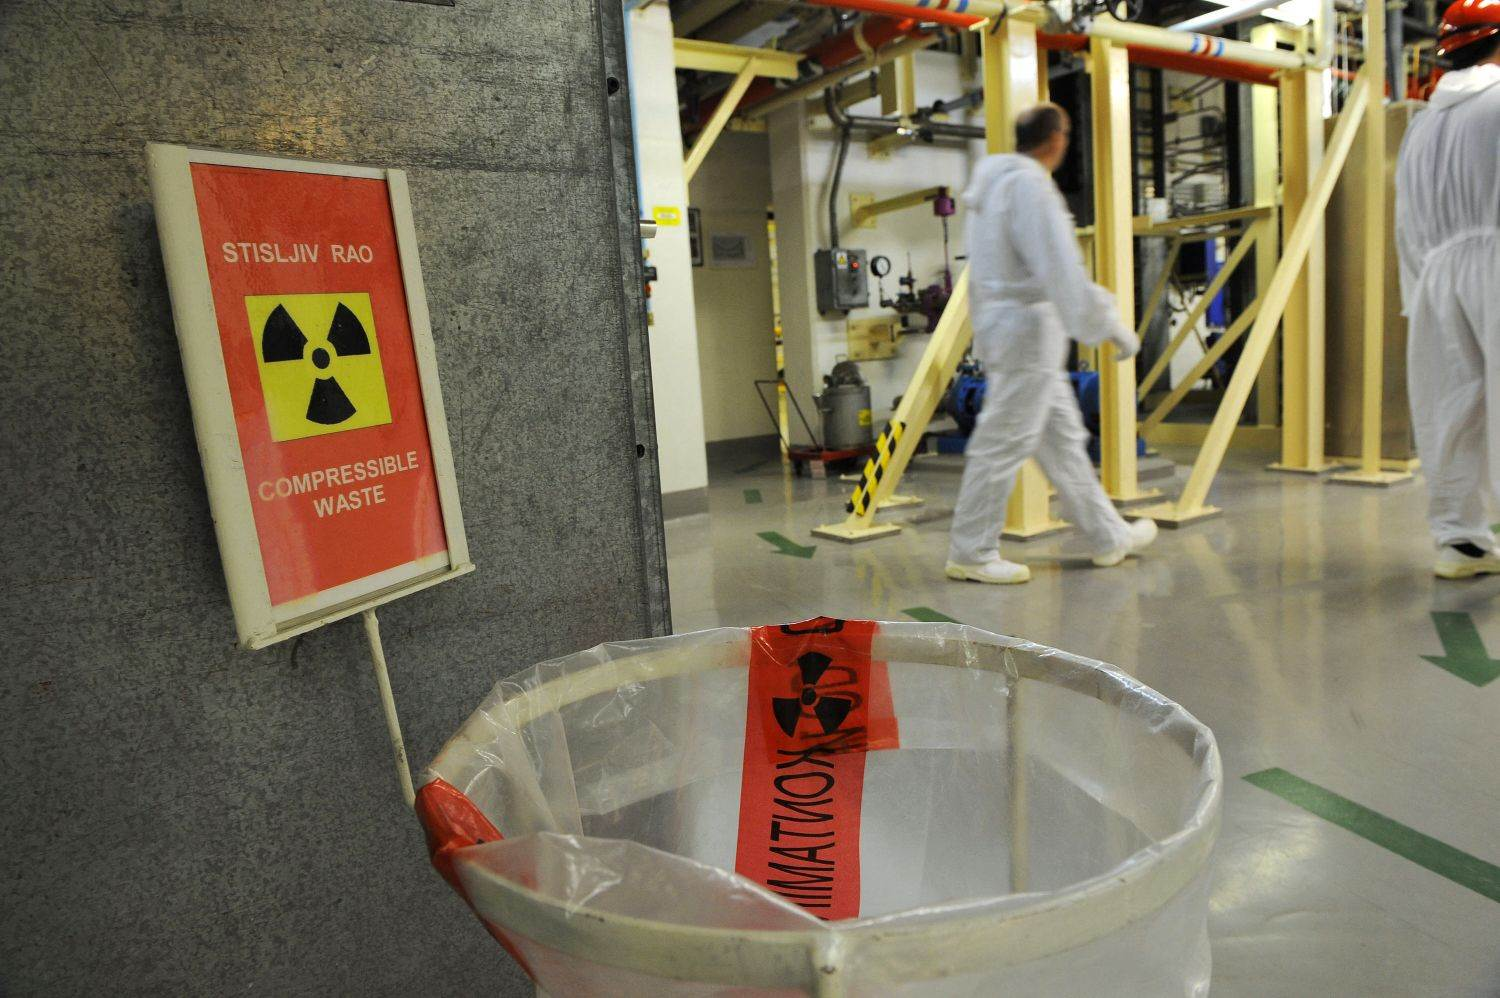 LOGO;ILLUSTRATION;NUCLEAR ENERGY;INTERIOR VIEW;NULL;NUCLEAR POWER PLANT;TOPSHOTS;industrial accident;nuclear accident;accident;disaster and accident;EU;SLOVENIA;NUCLEAR;ALERT;category_code_dis